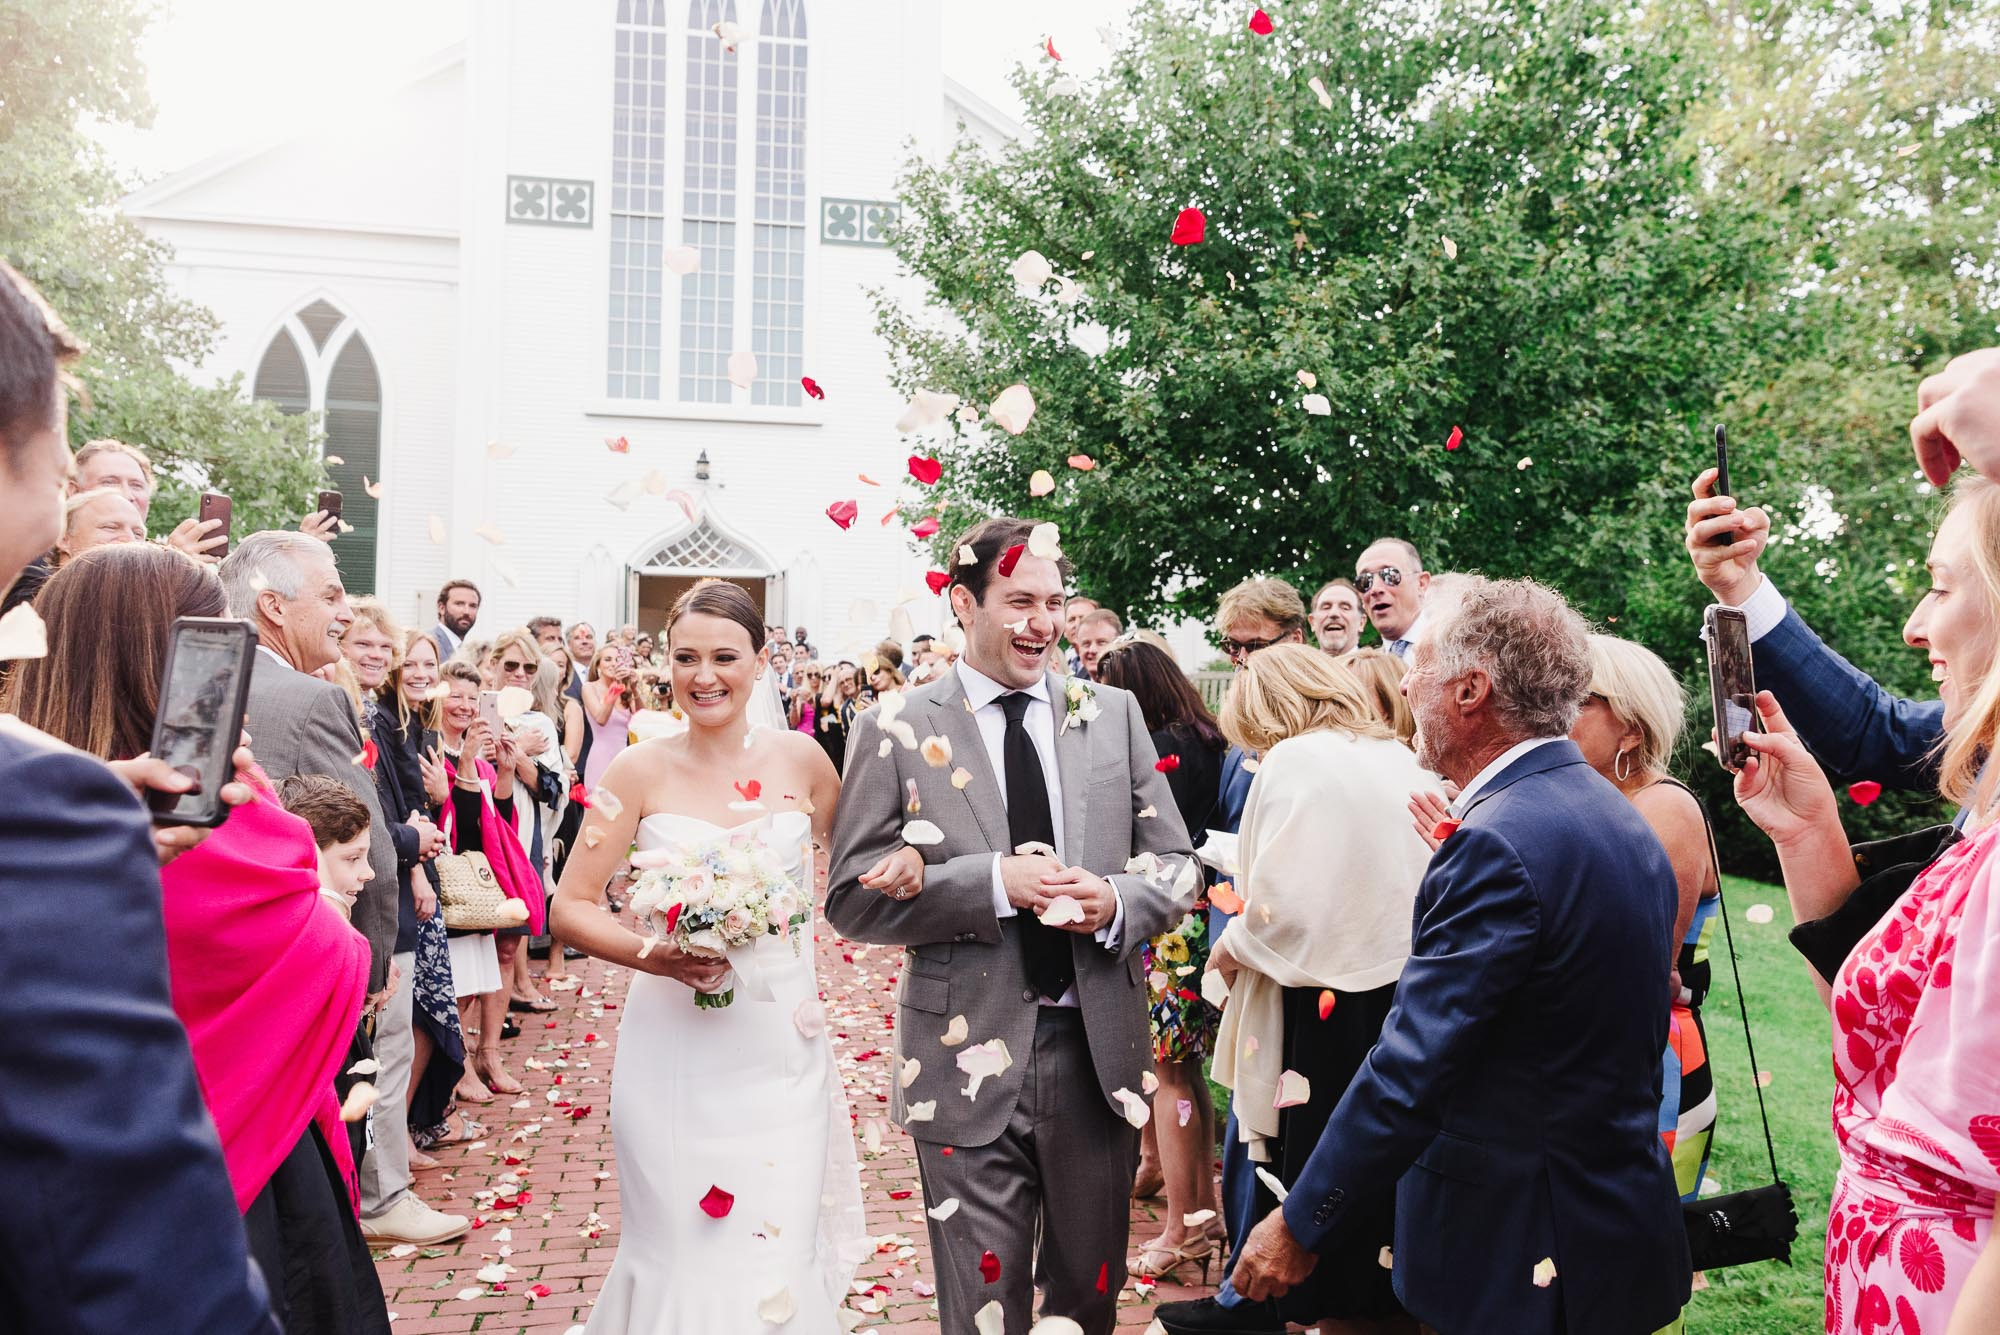 First Congregational Church Nantucket wedding